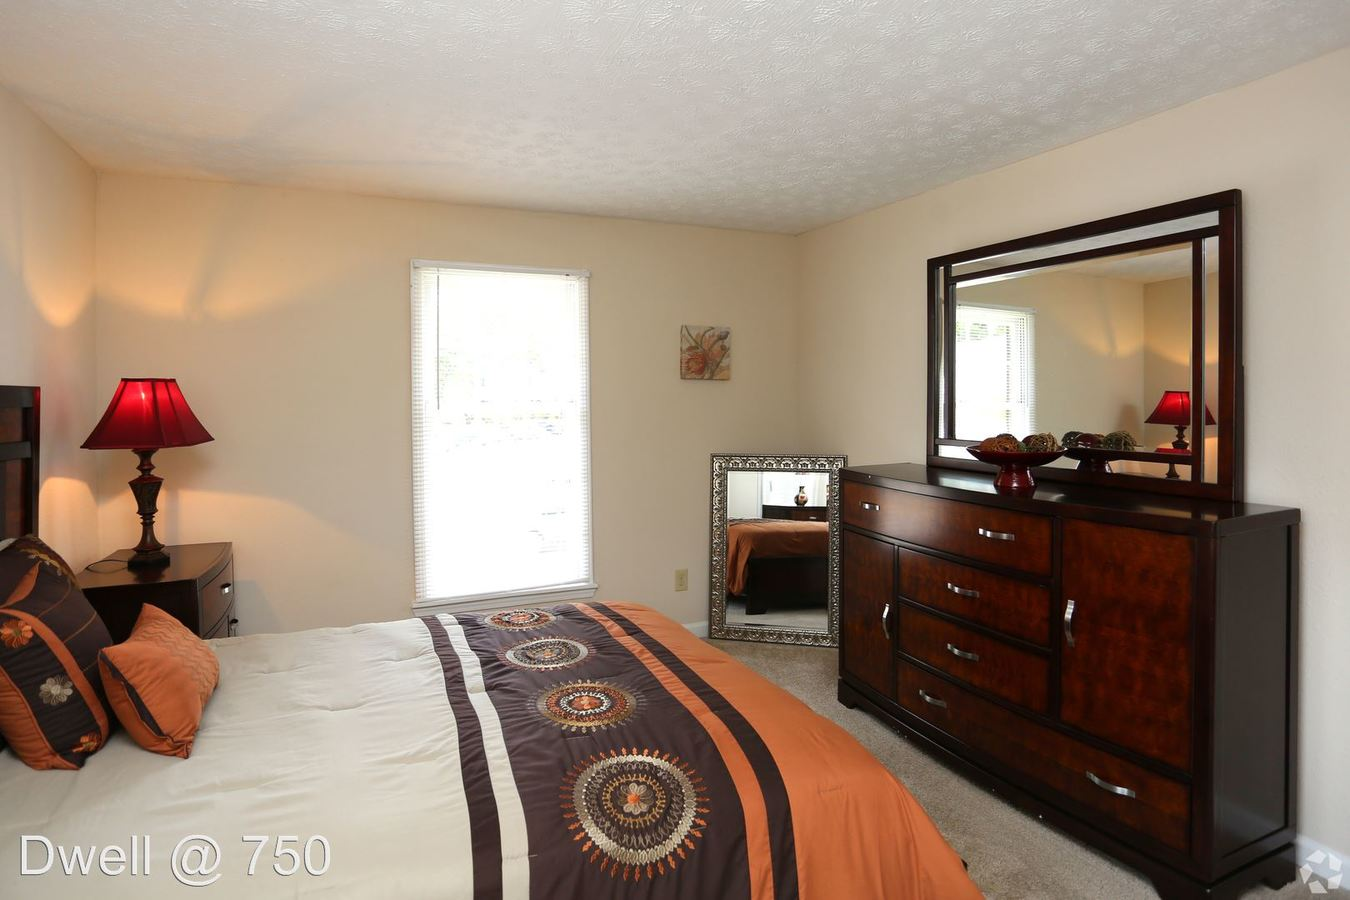 2 Bedrooms 1 Bathroom Apartment for rent at 750 Franklin Rd Se in Marietta, GA